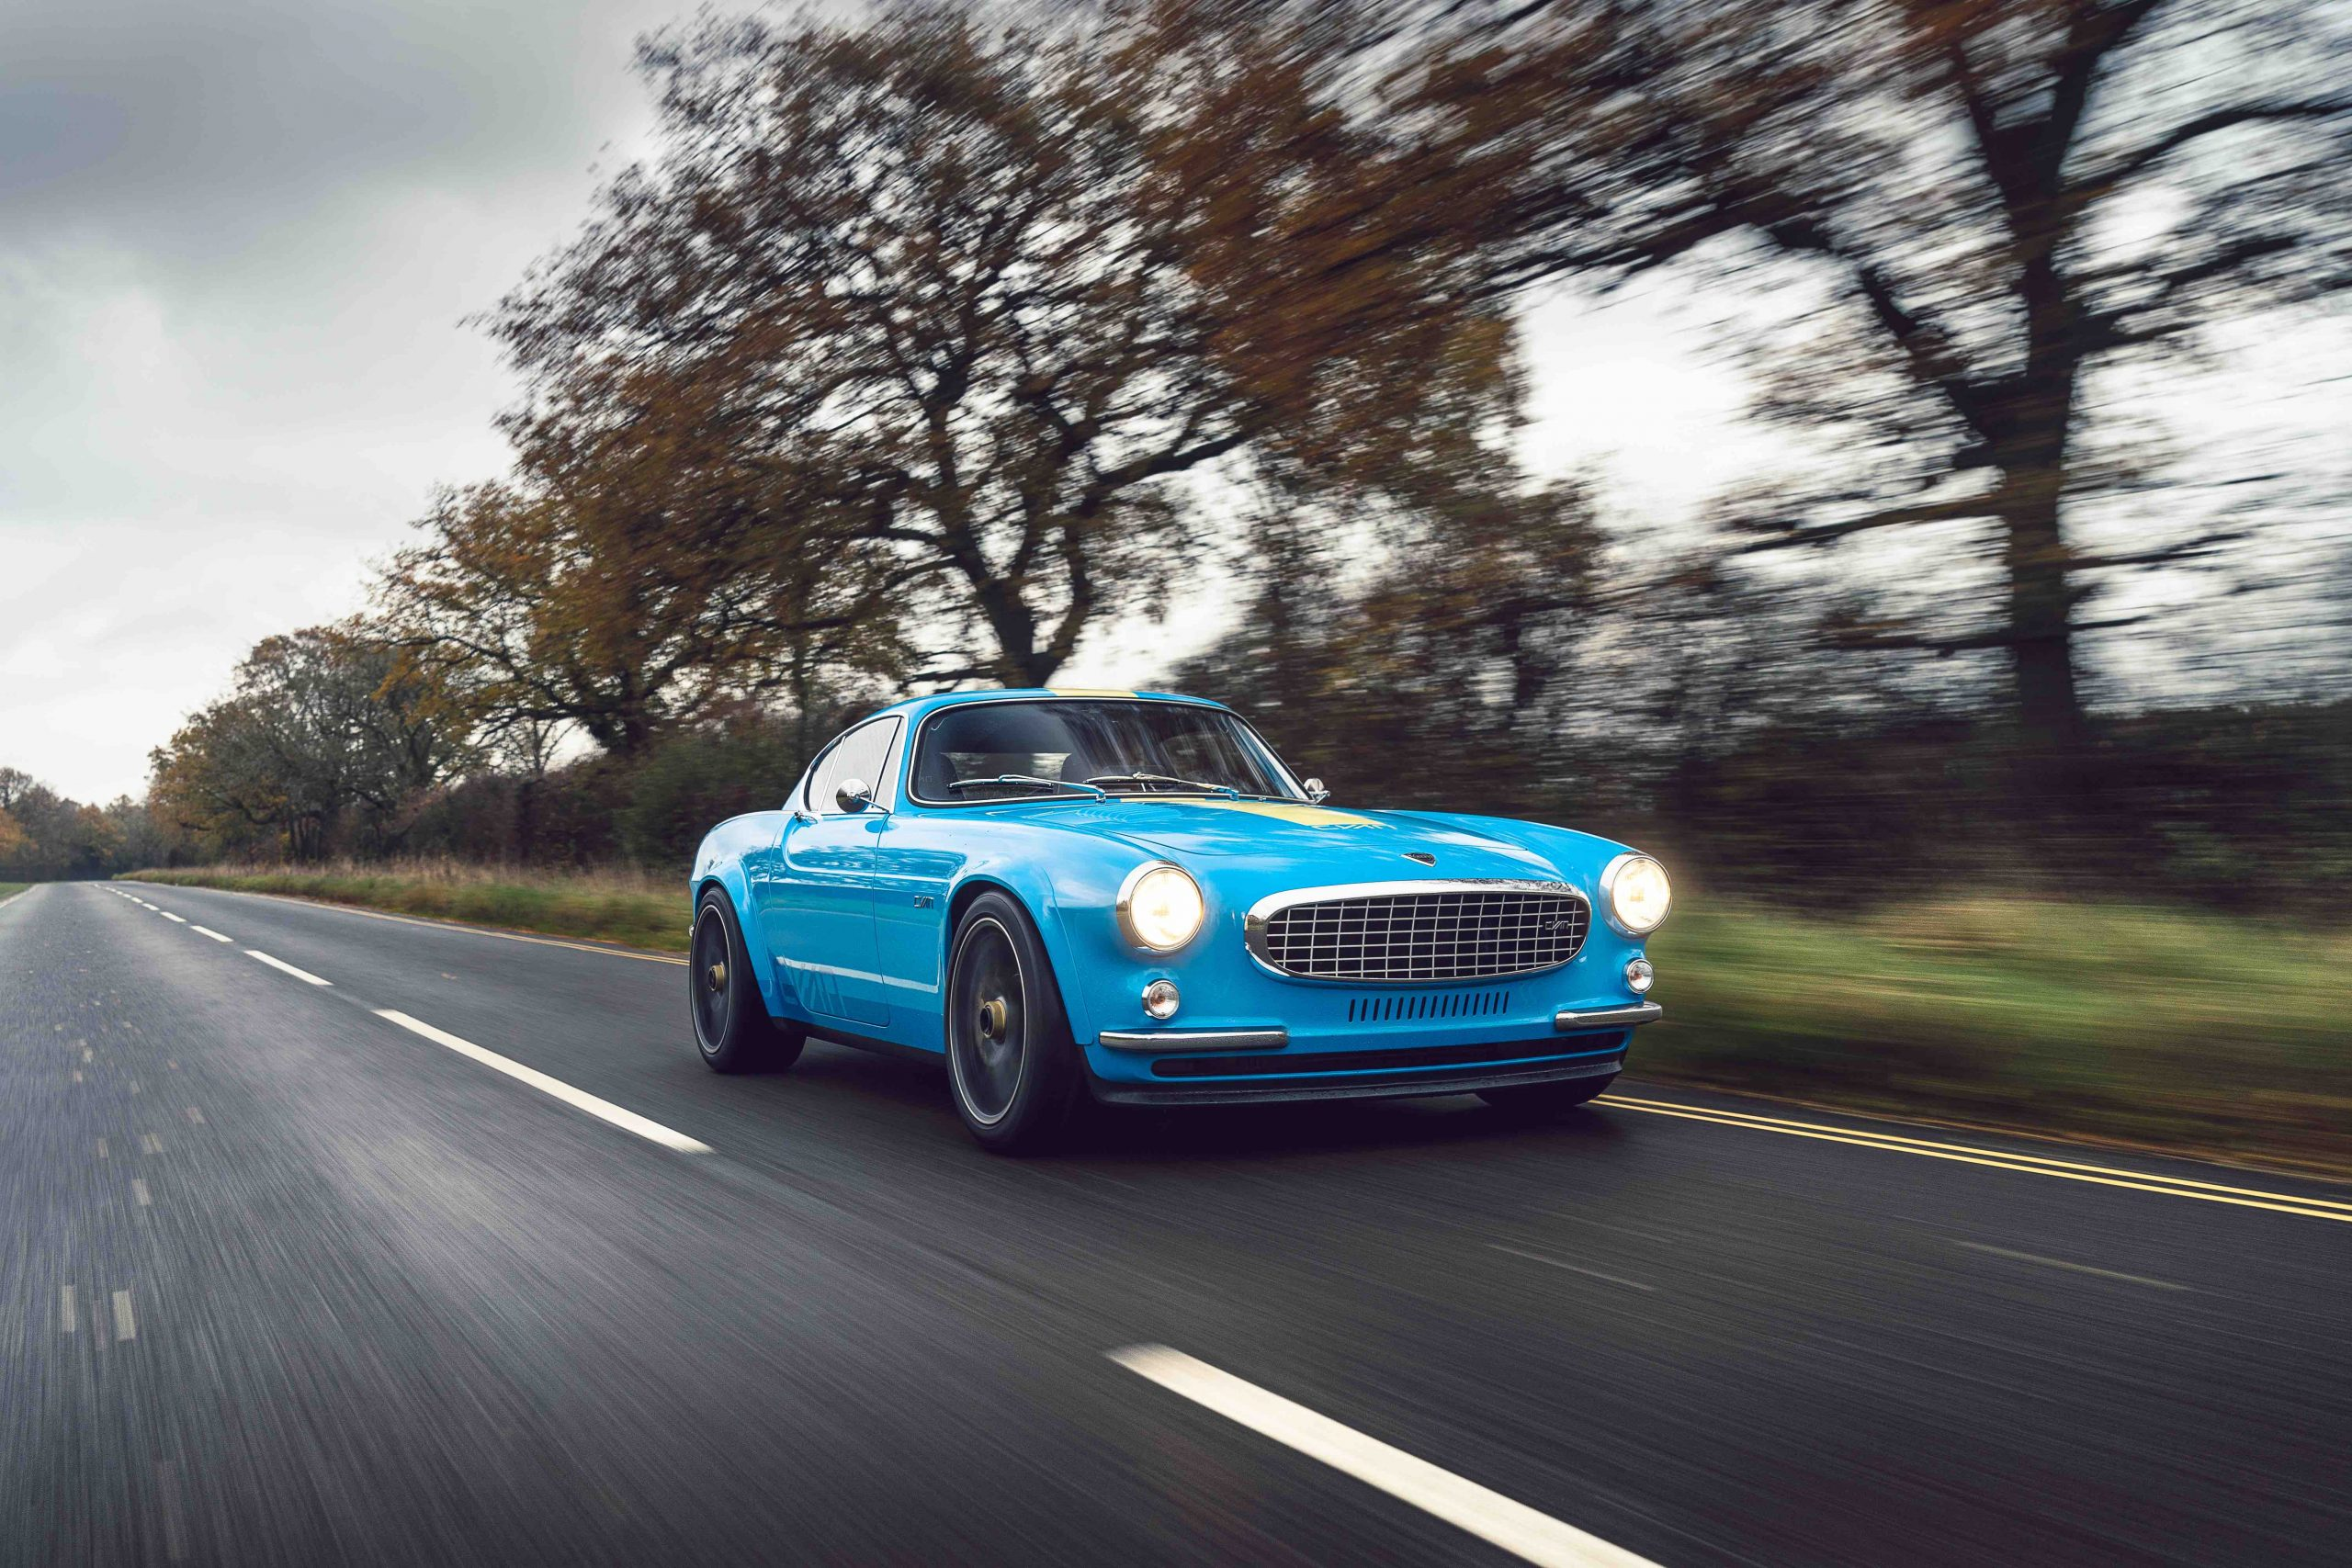 Volvo P1800 Cyan review: It doesn't get much better than this